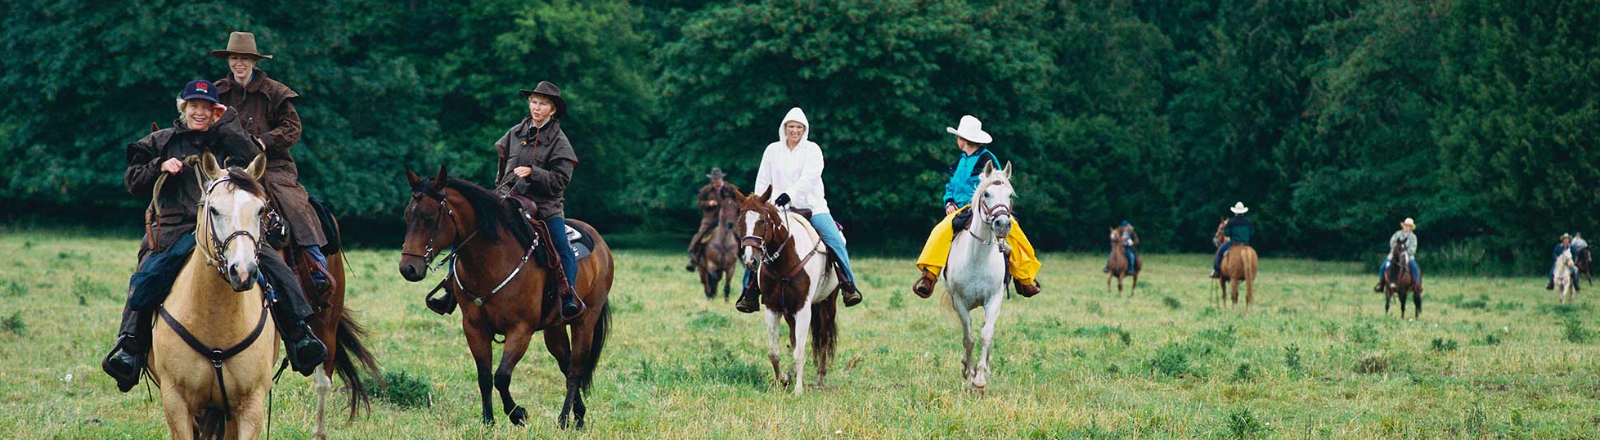 A buckskin leads the way for 10 horseback riders as they ride through a meadow while exploring the Molalla River Corridor.